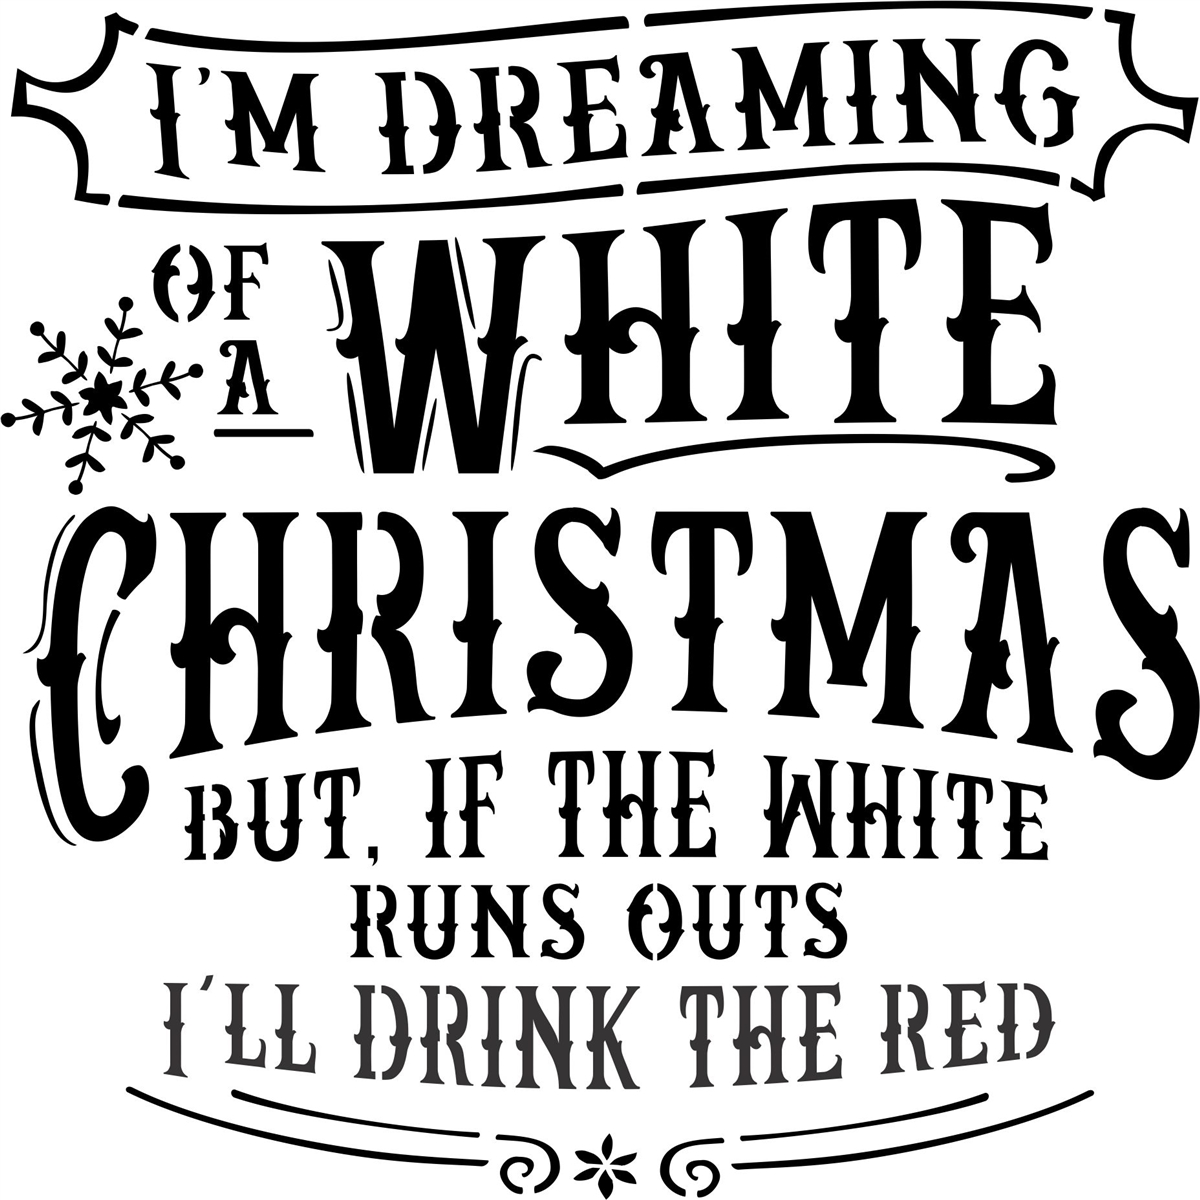 I\'m Dreaming Of A White Christmas but if the White runs out I\'ll Drink